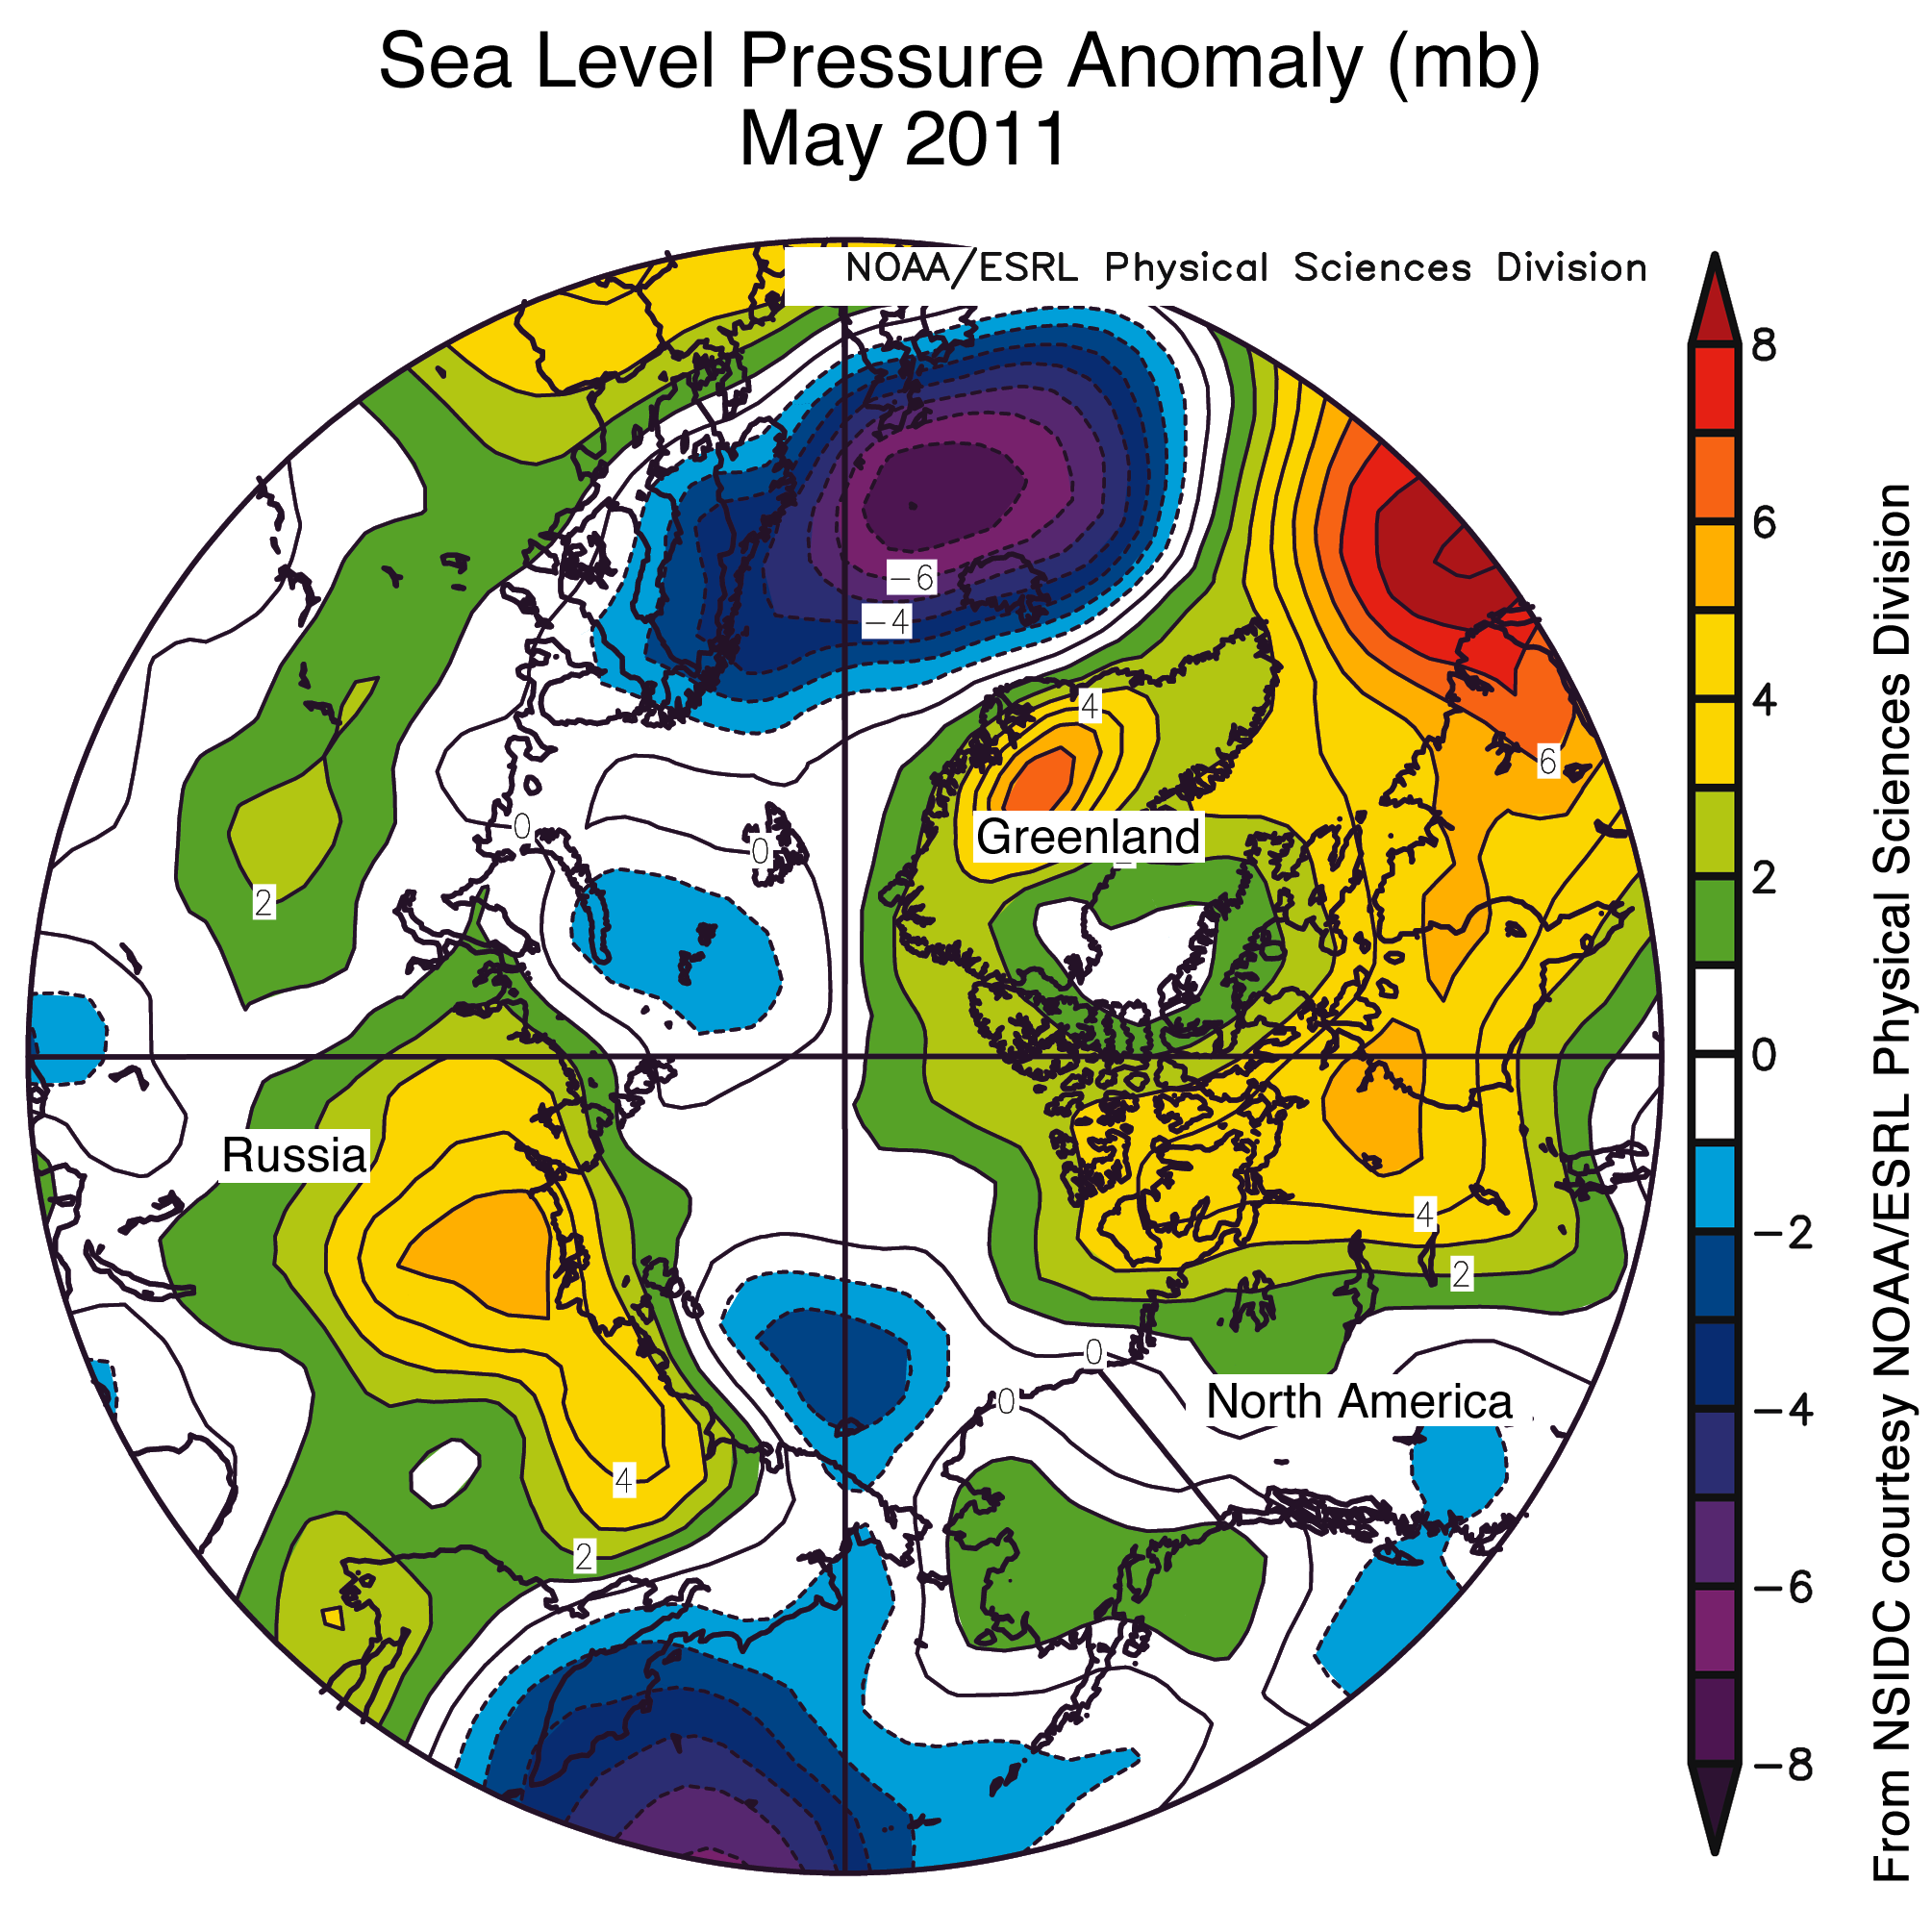 Worksheet. Low ice extent in May but summer melt will depend on weather